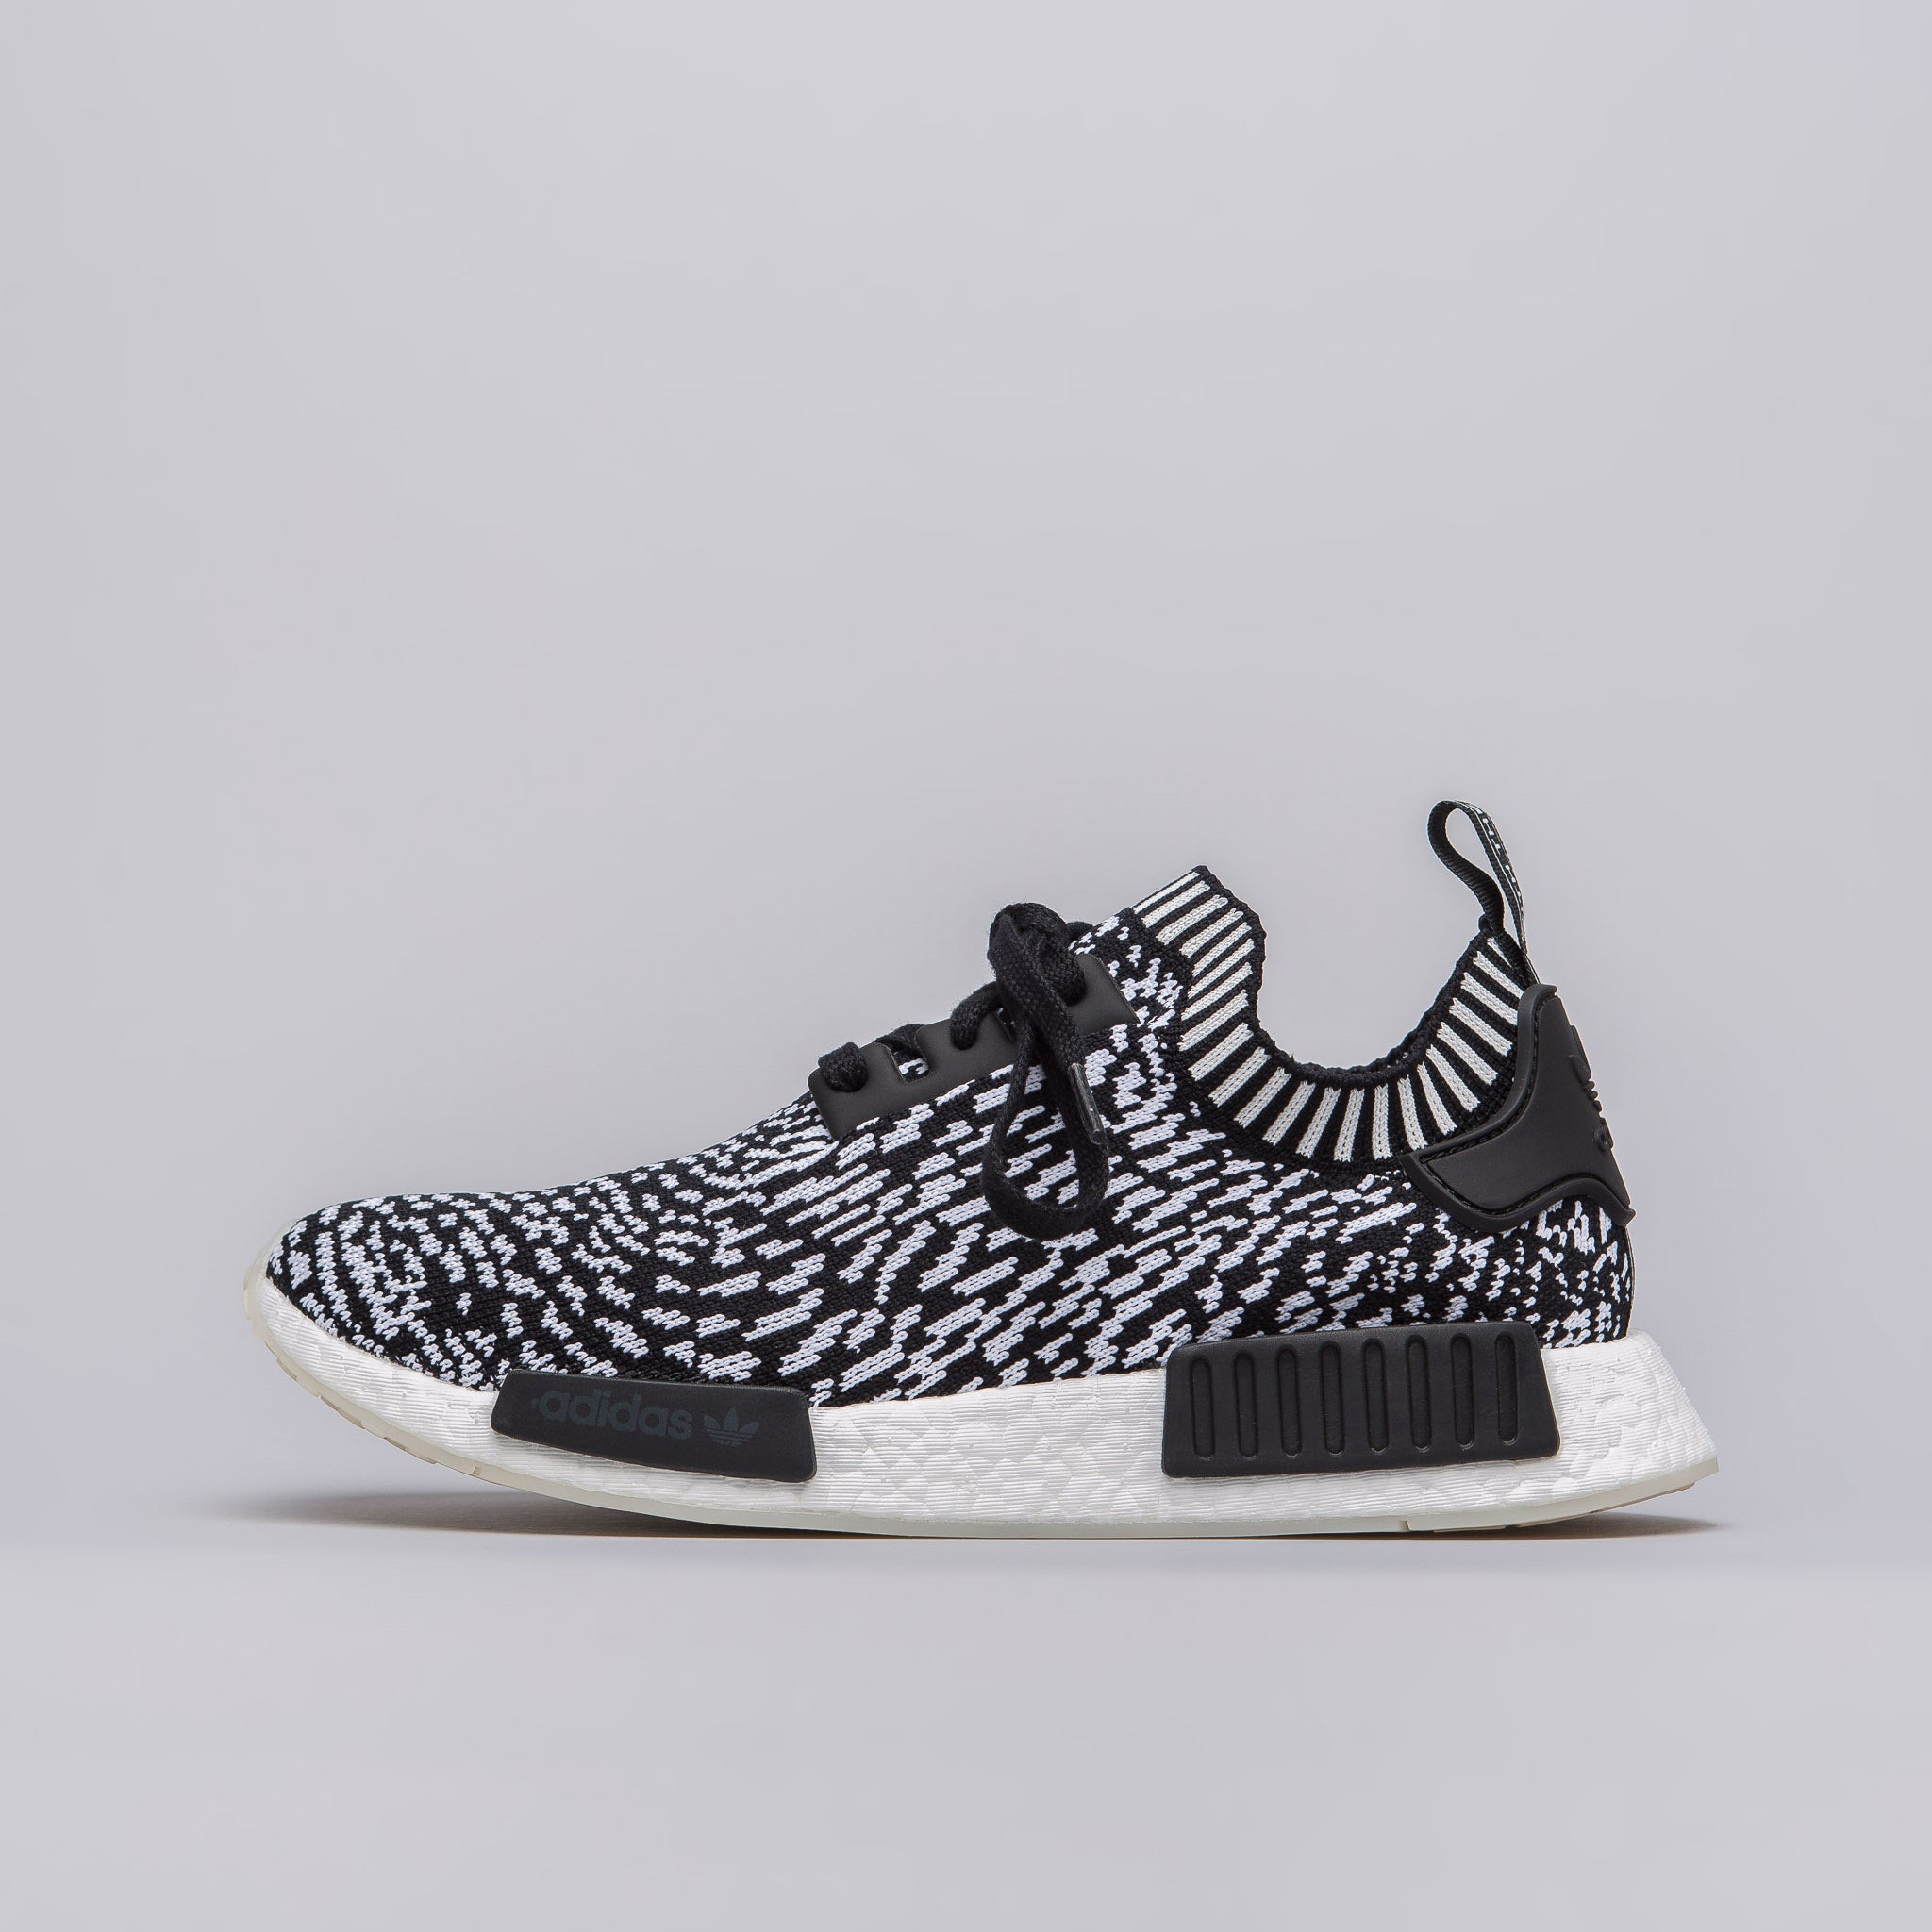 nmd r1 black Australia Free Local Classifieds